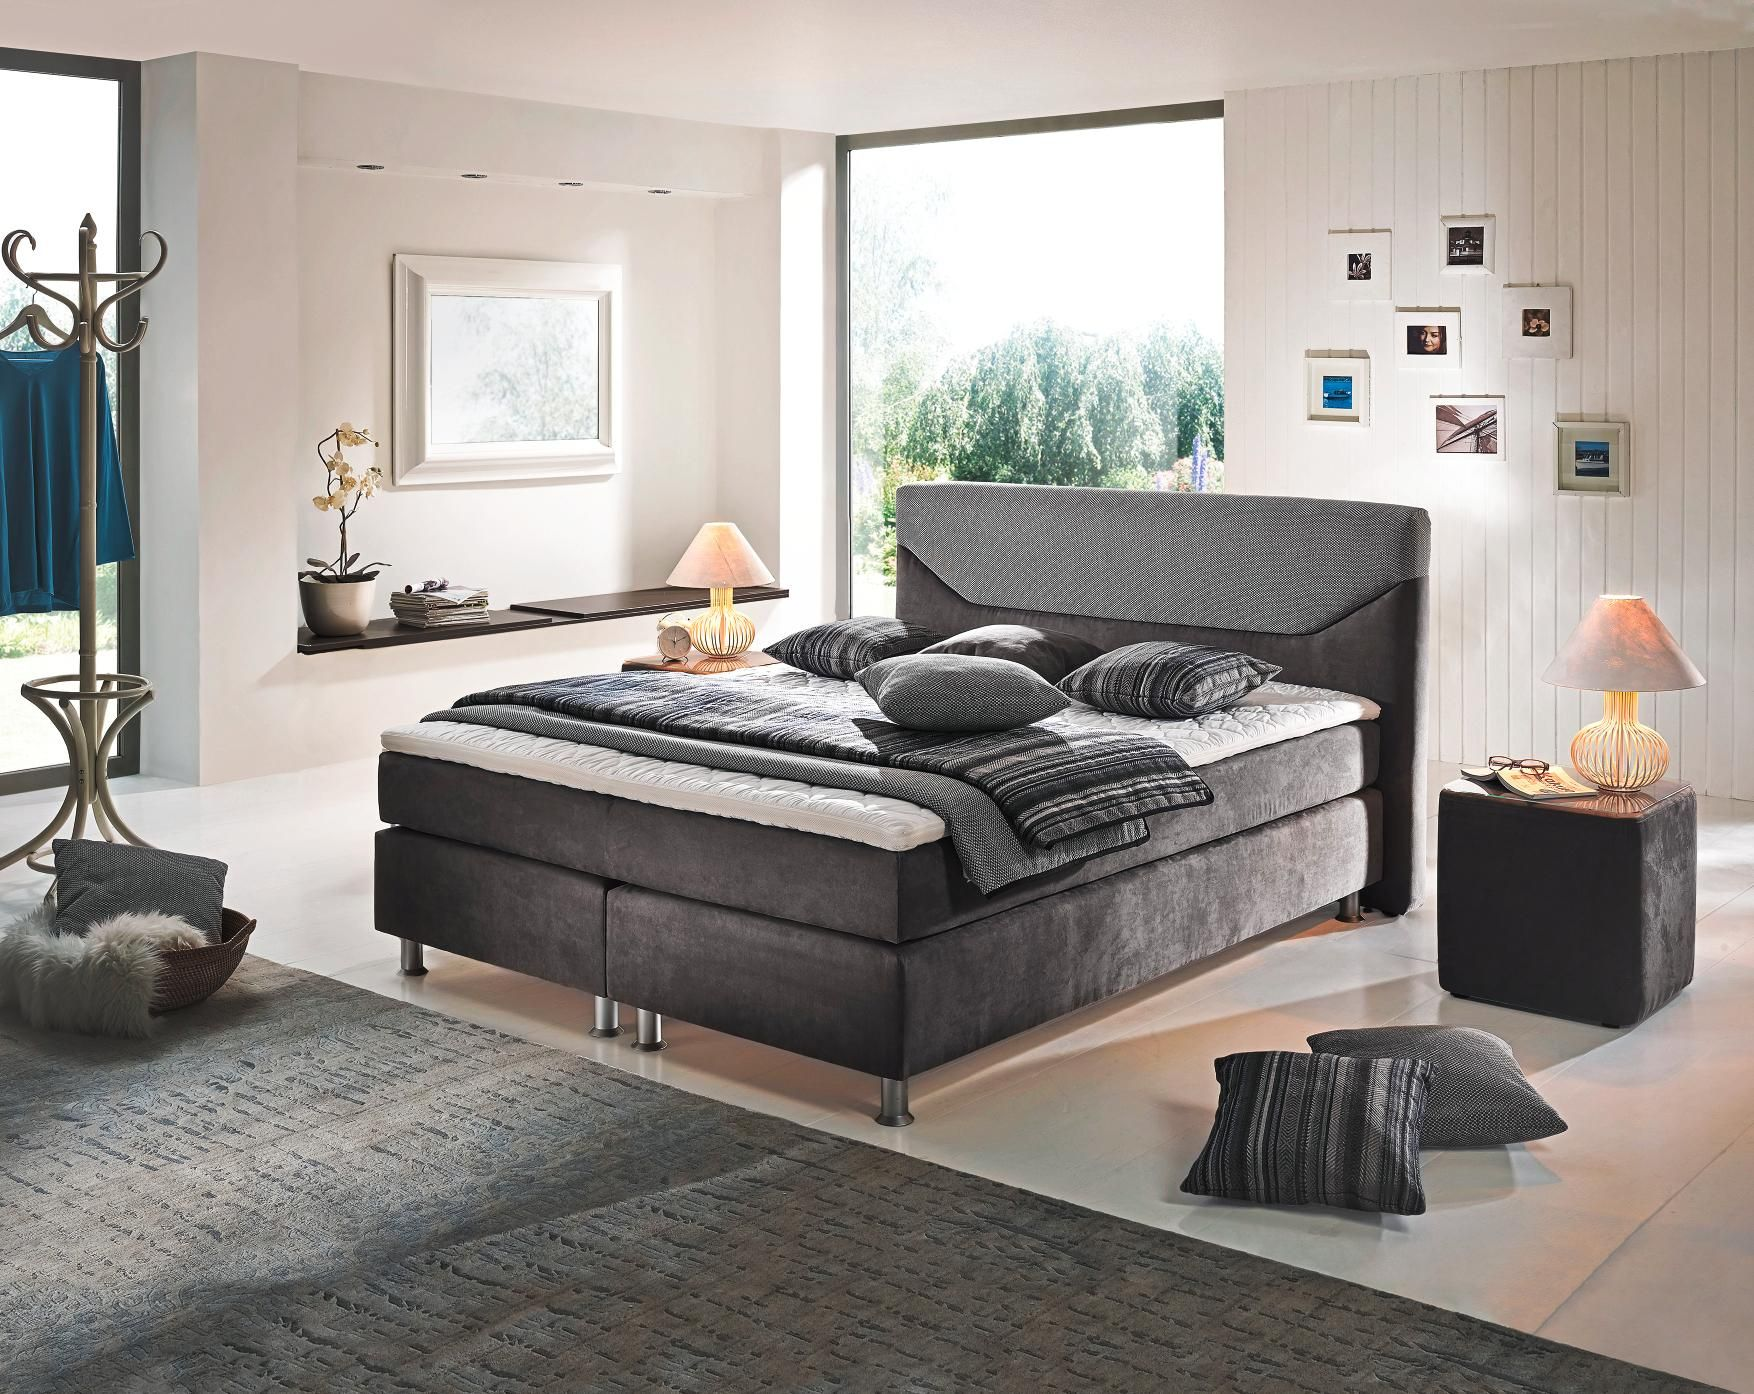 Attraktives Boxspringbett Von BENTLEY COLLECTION: Zeitlose Eleganz In Grau